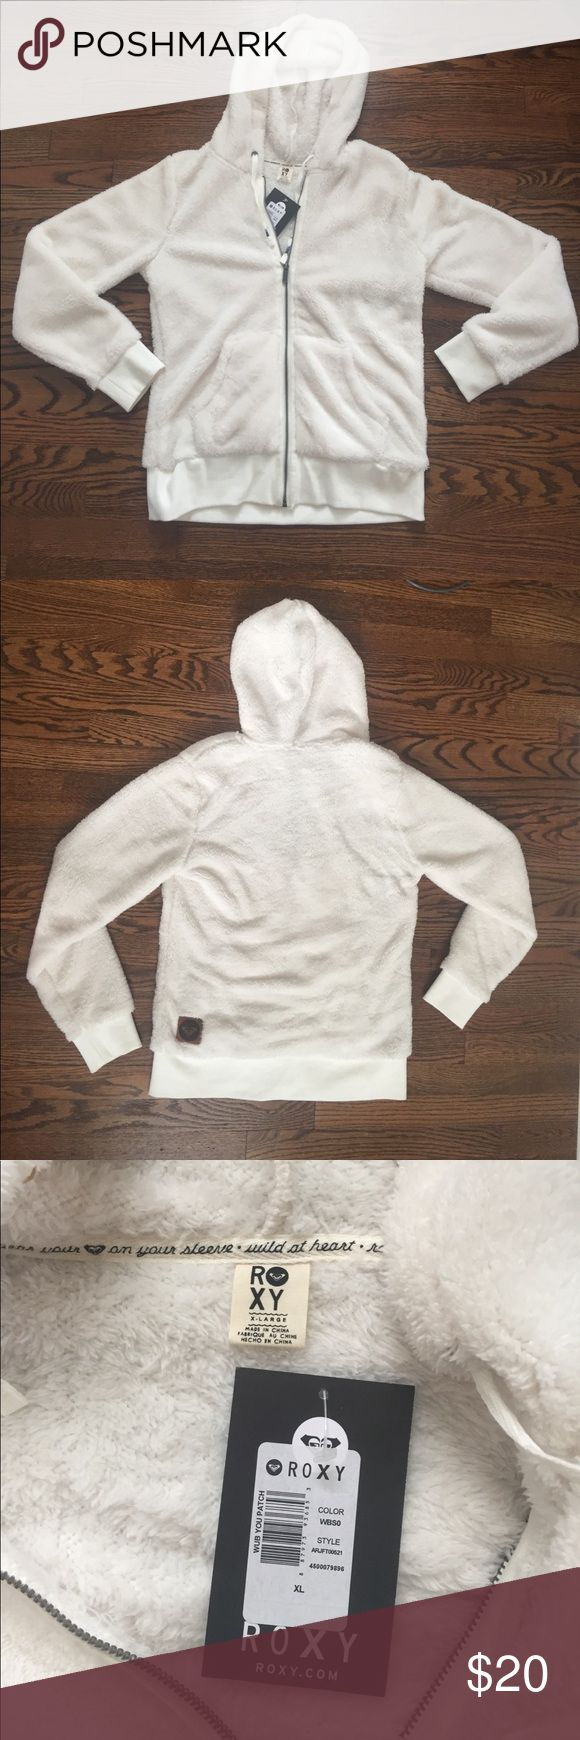 XL Roxy Sherpa Zip Up Hoodie This is a never worn NWT super soft and warm Roxy Zip Up hoodie. It has a cream color with adorable detail on the hood strings. The material is cozy sherpa inside and  out. It also features a Roxy patch on the back, bottom right corner of the hoodie. This is a size XL. Roxy Tops Sweatshirts & Hoodies